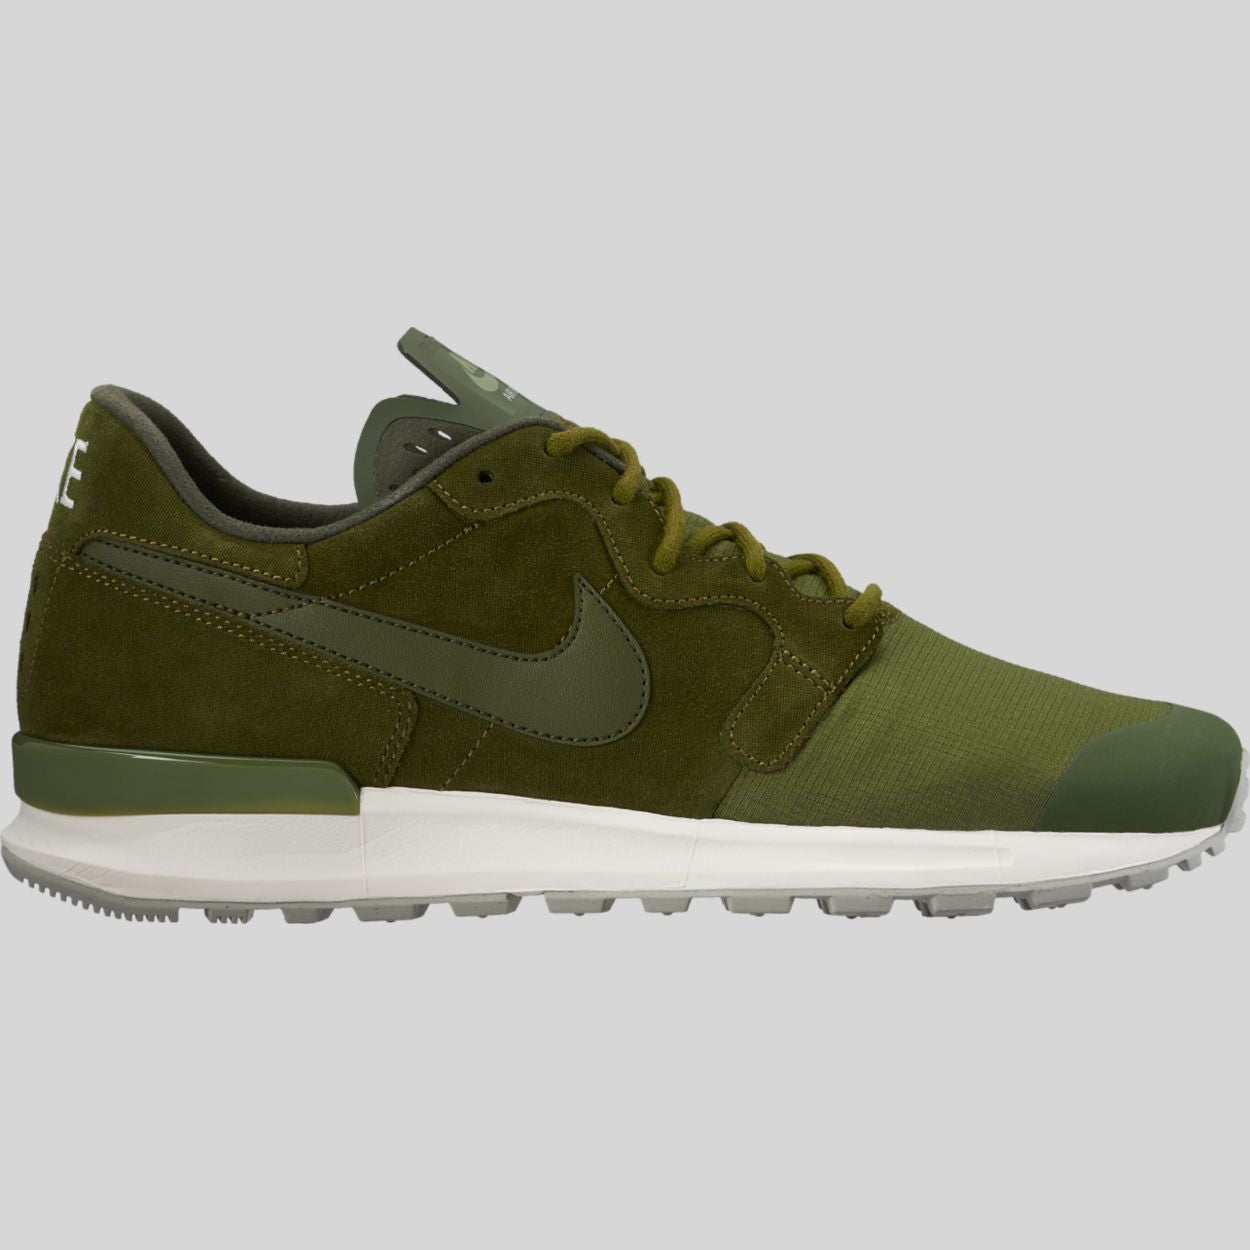 cáncer Edad adulta sobrina  Nike Air Berwuda PRM Legion Green Sequoia Sail (844978-300) | KIX-FILES